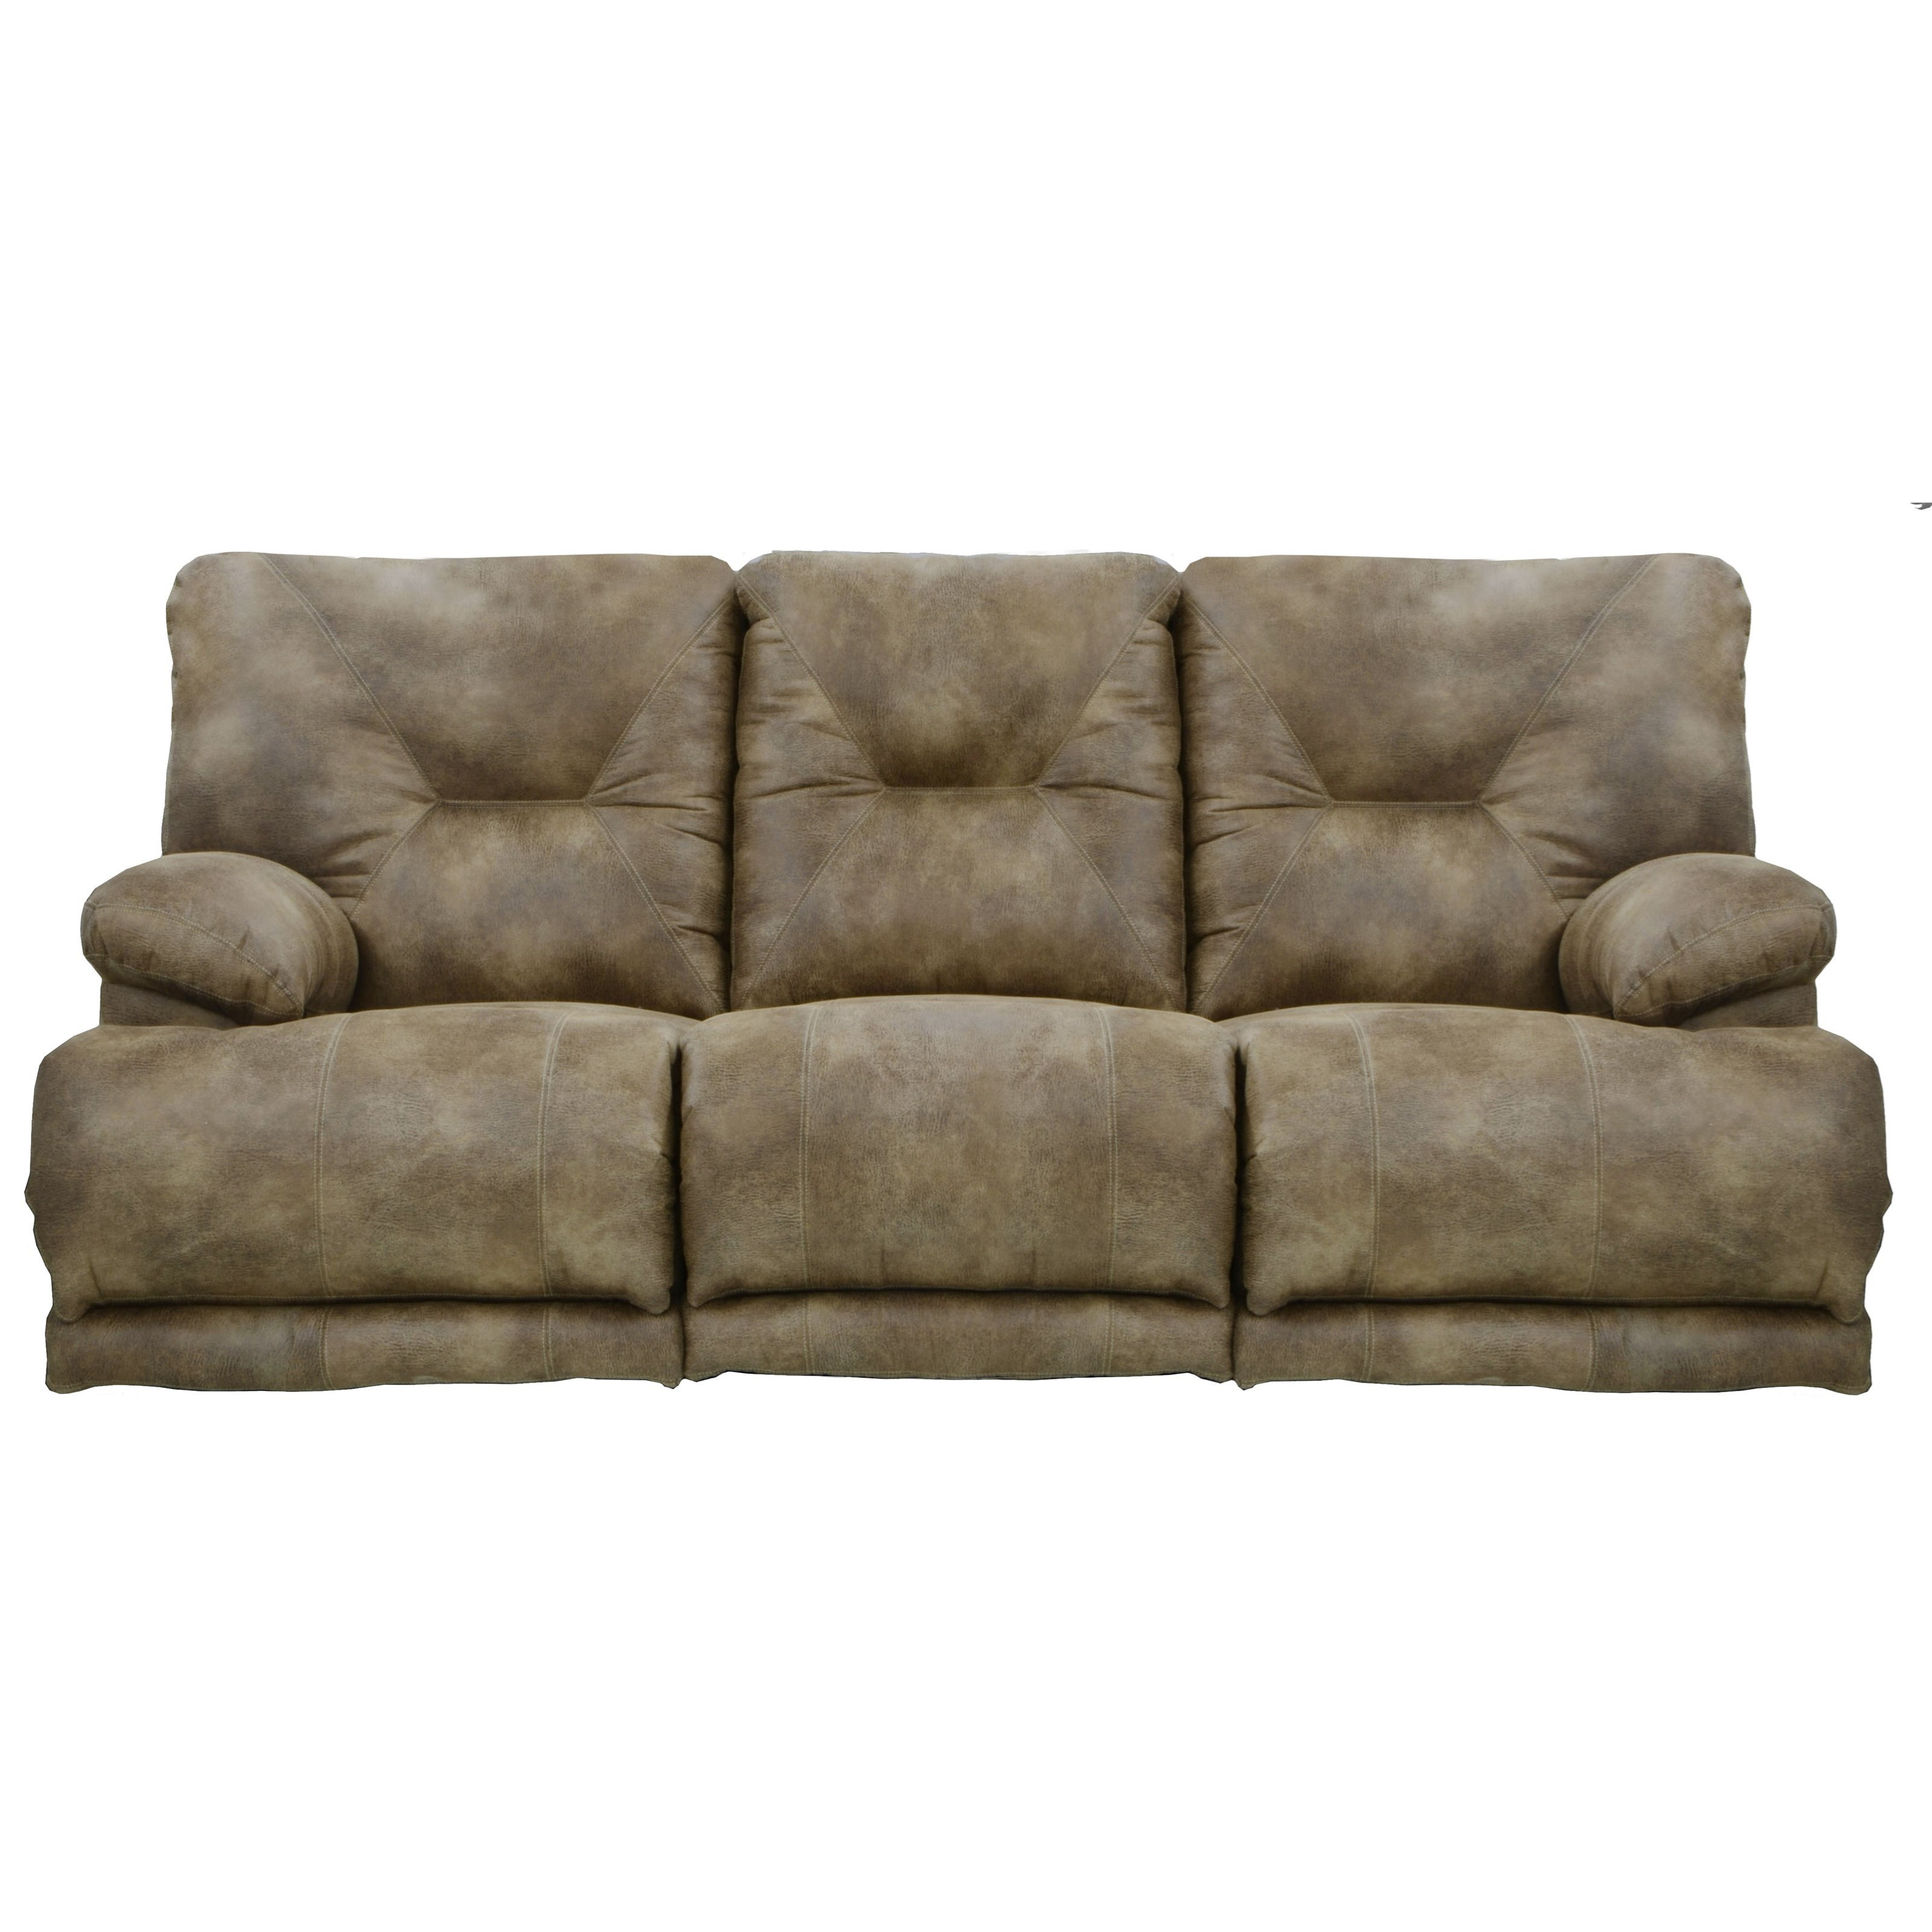 Voyager Lay Flat Reclining Sofa by Catnapper at Northeast Factory Direct